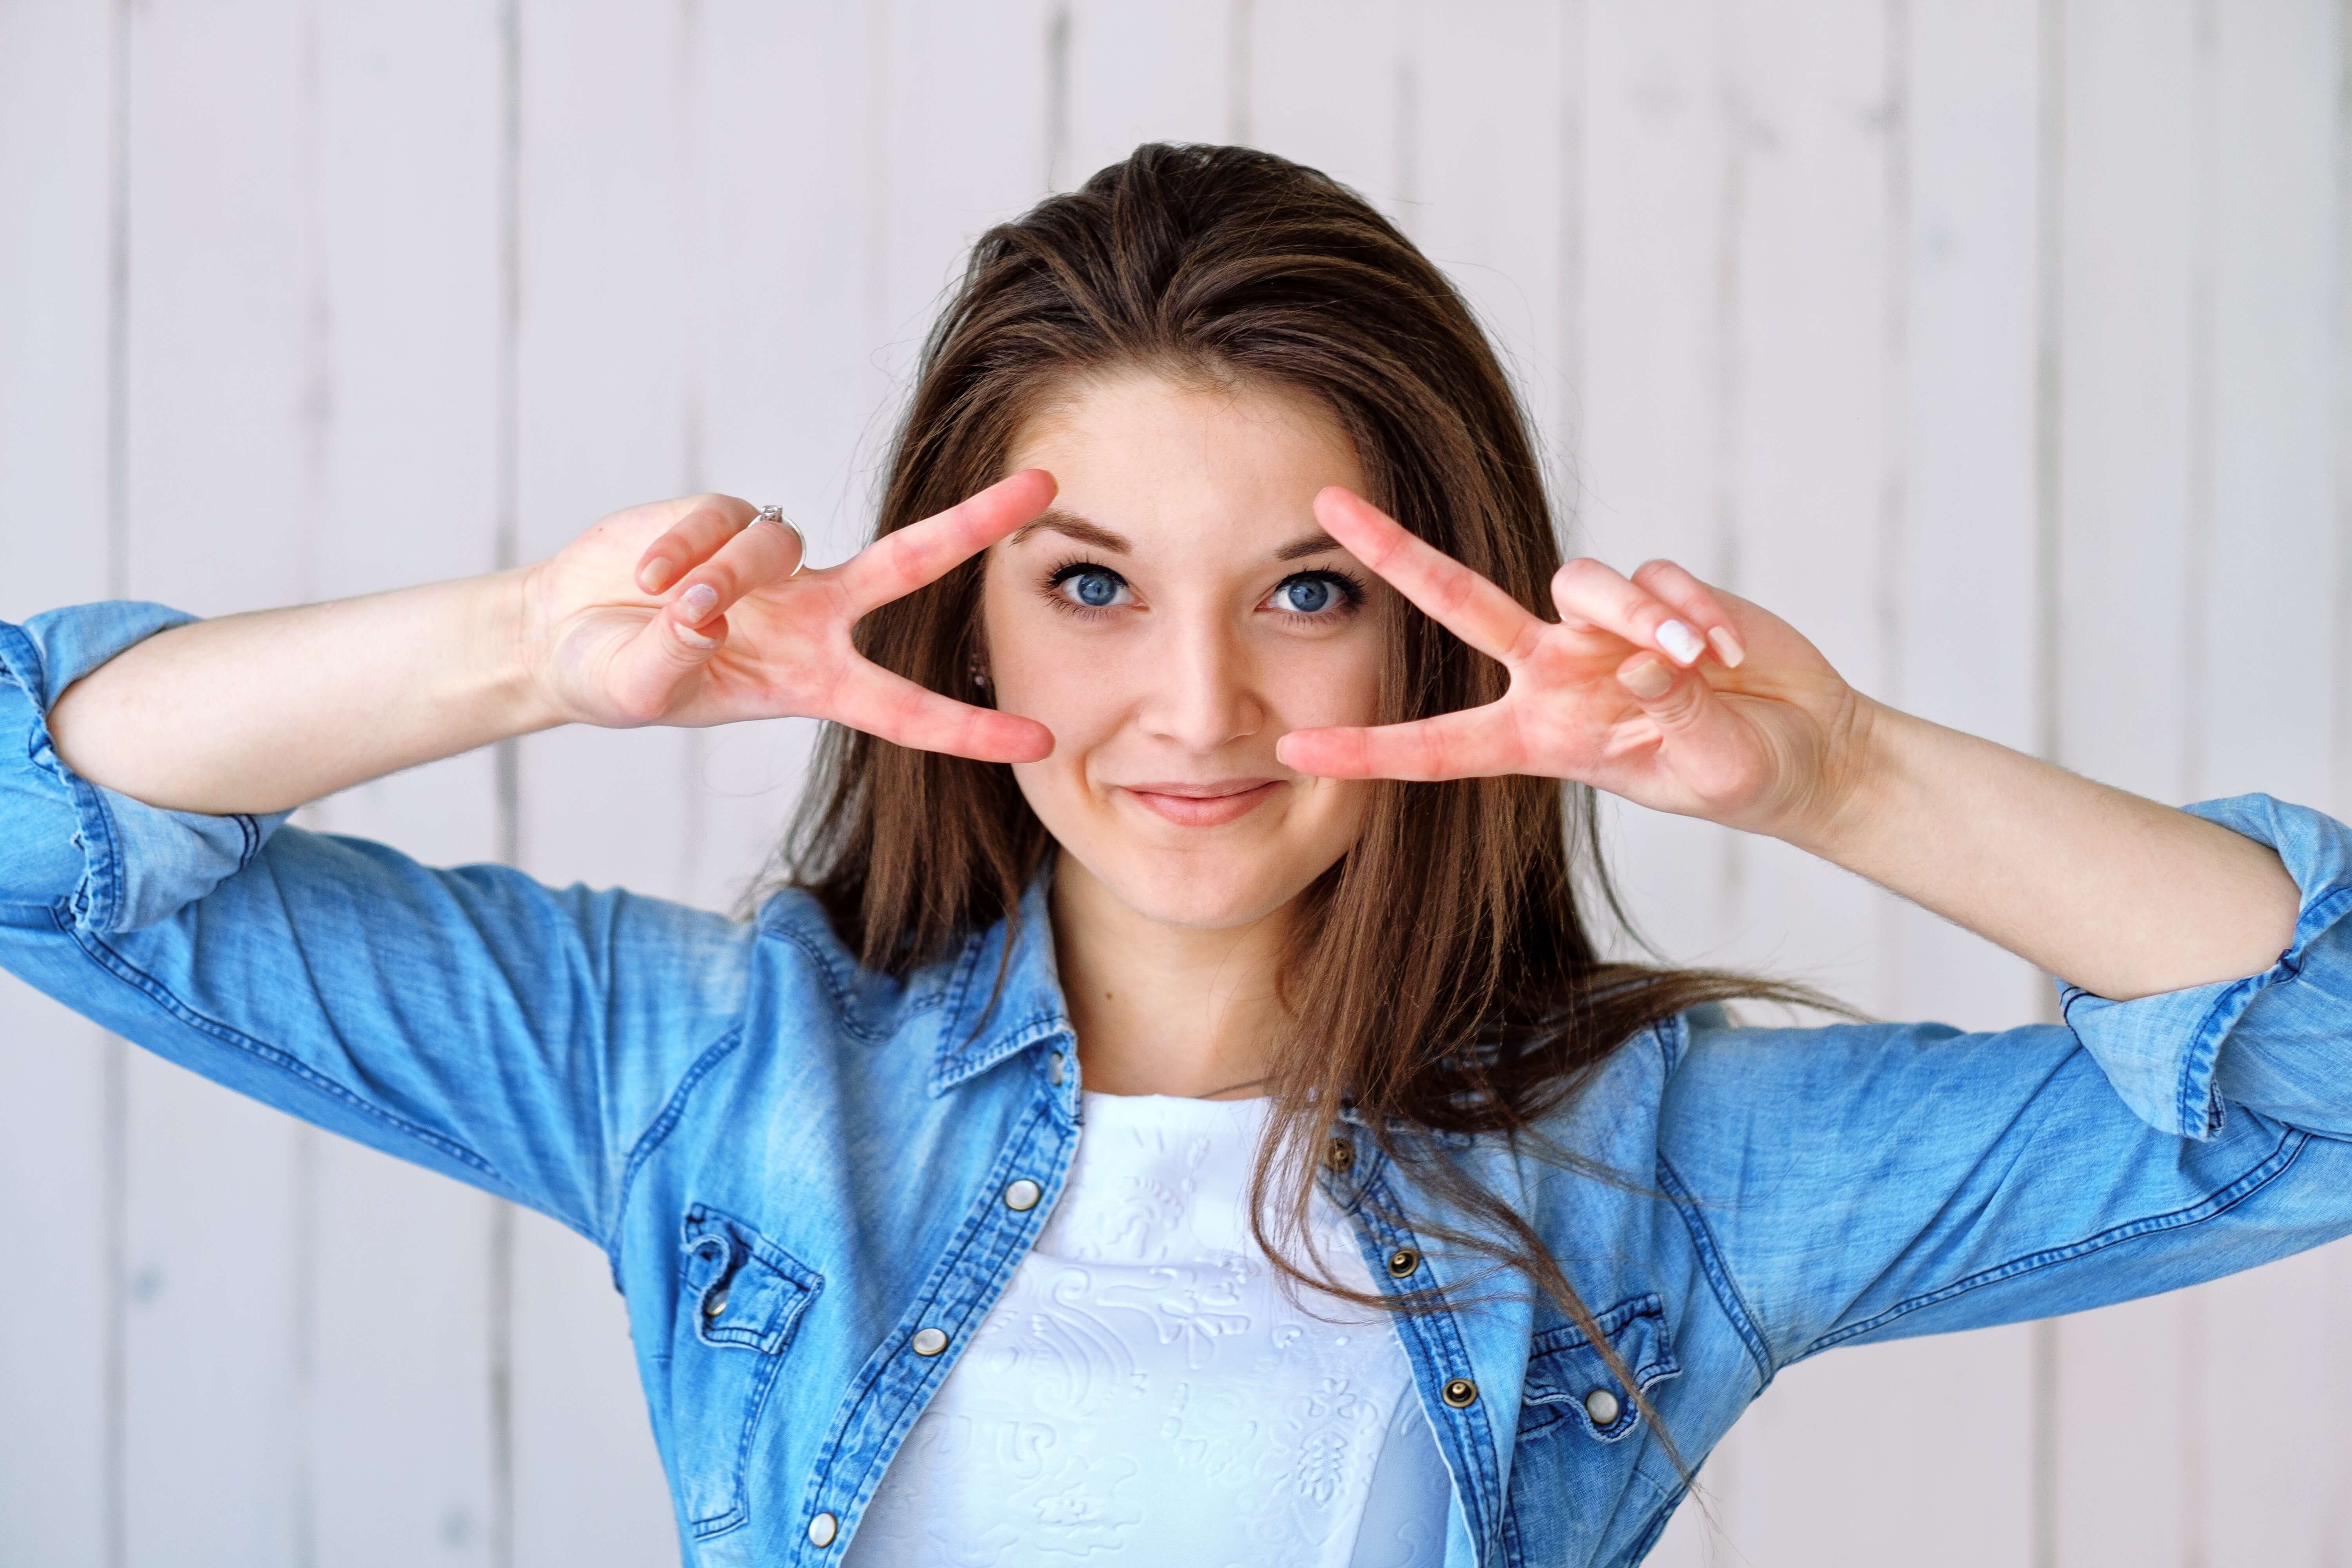 Woman holding up her finger in peace signs by her eyes.